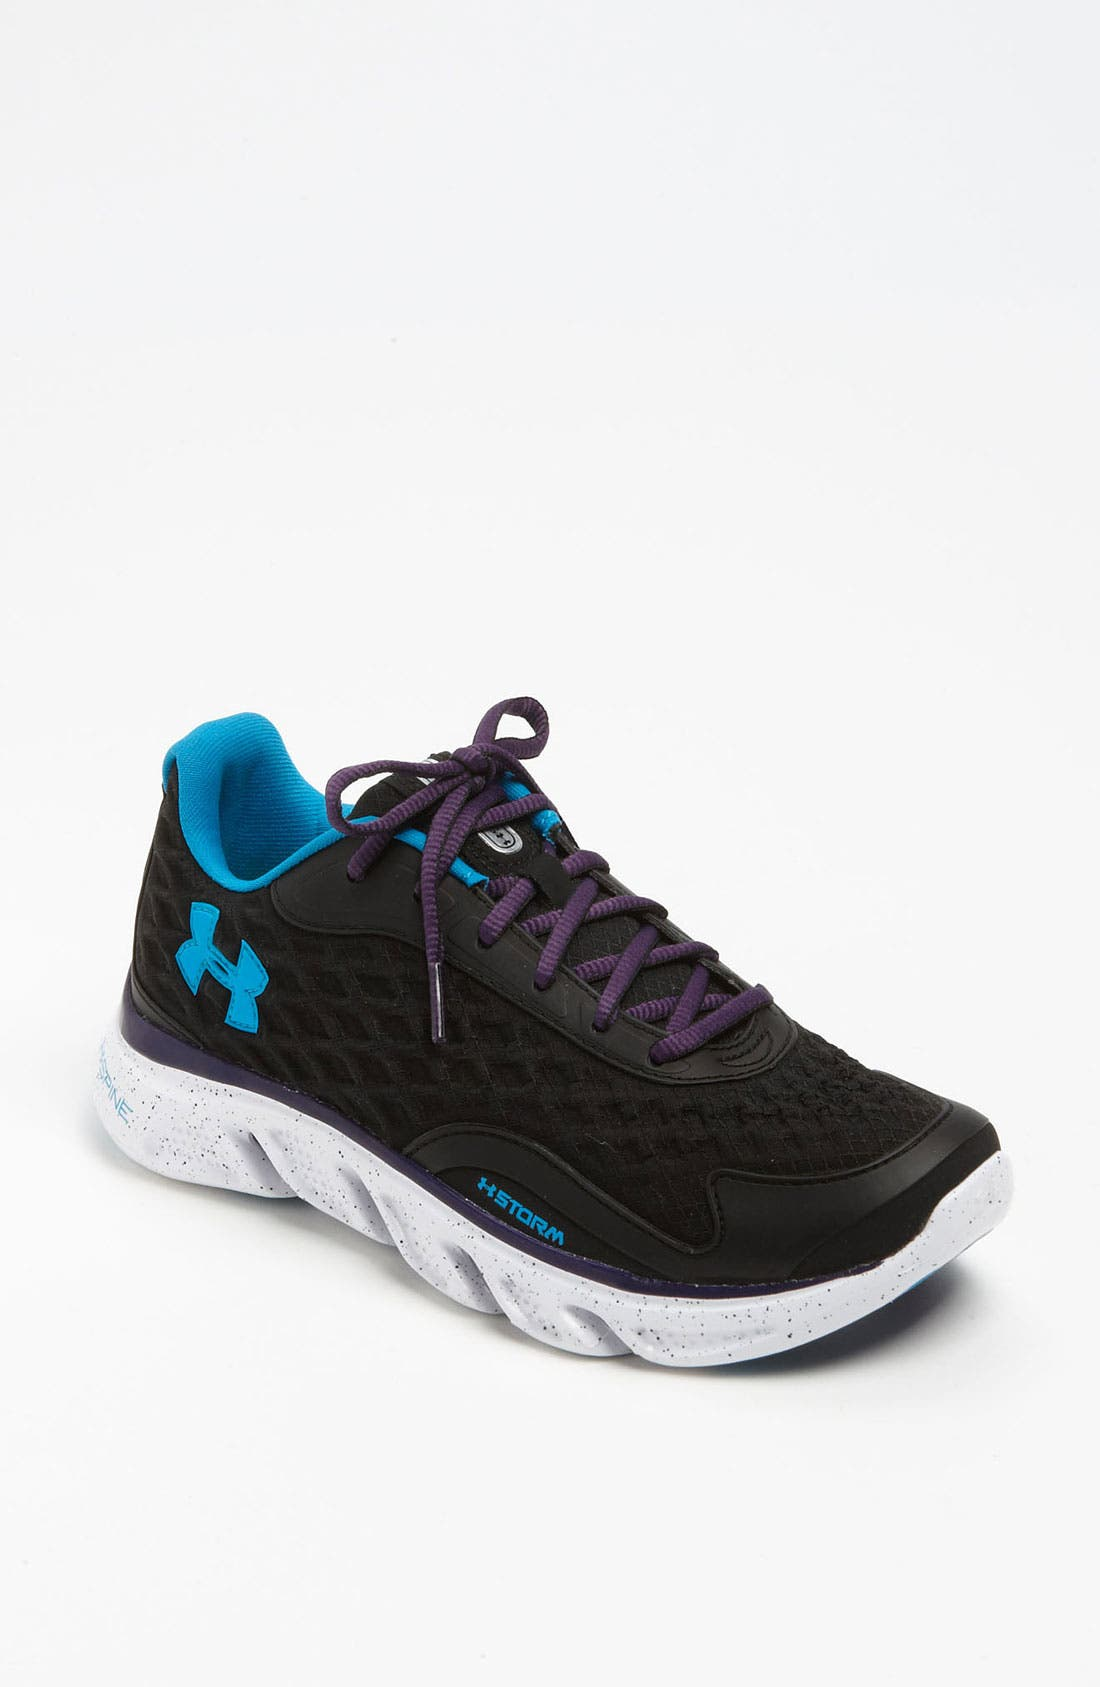 Alternate Image 1 Selected - Under Armour 'Spine RPM' Running Shoe (Women)